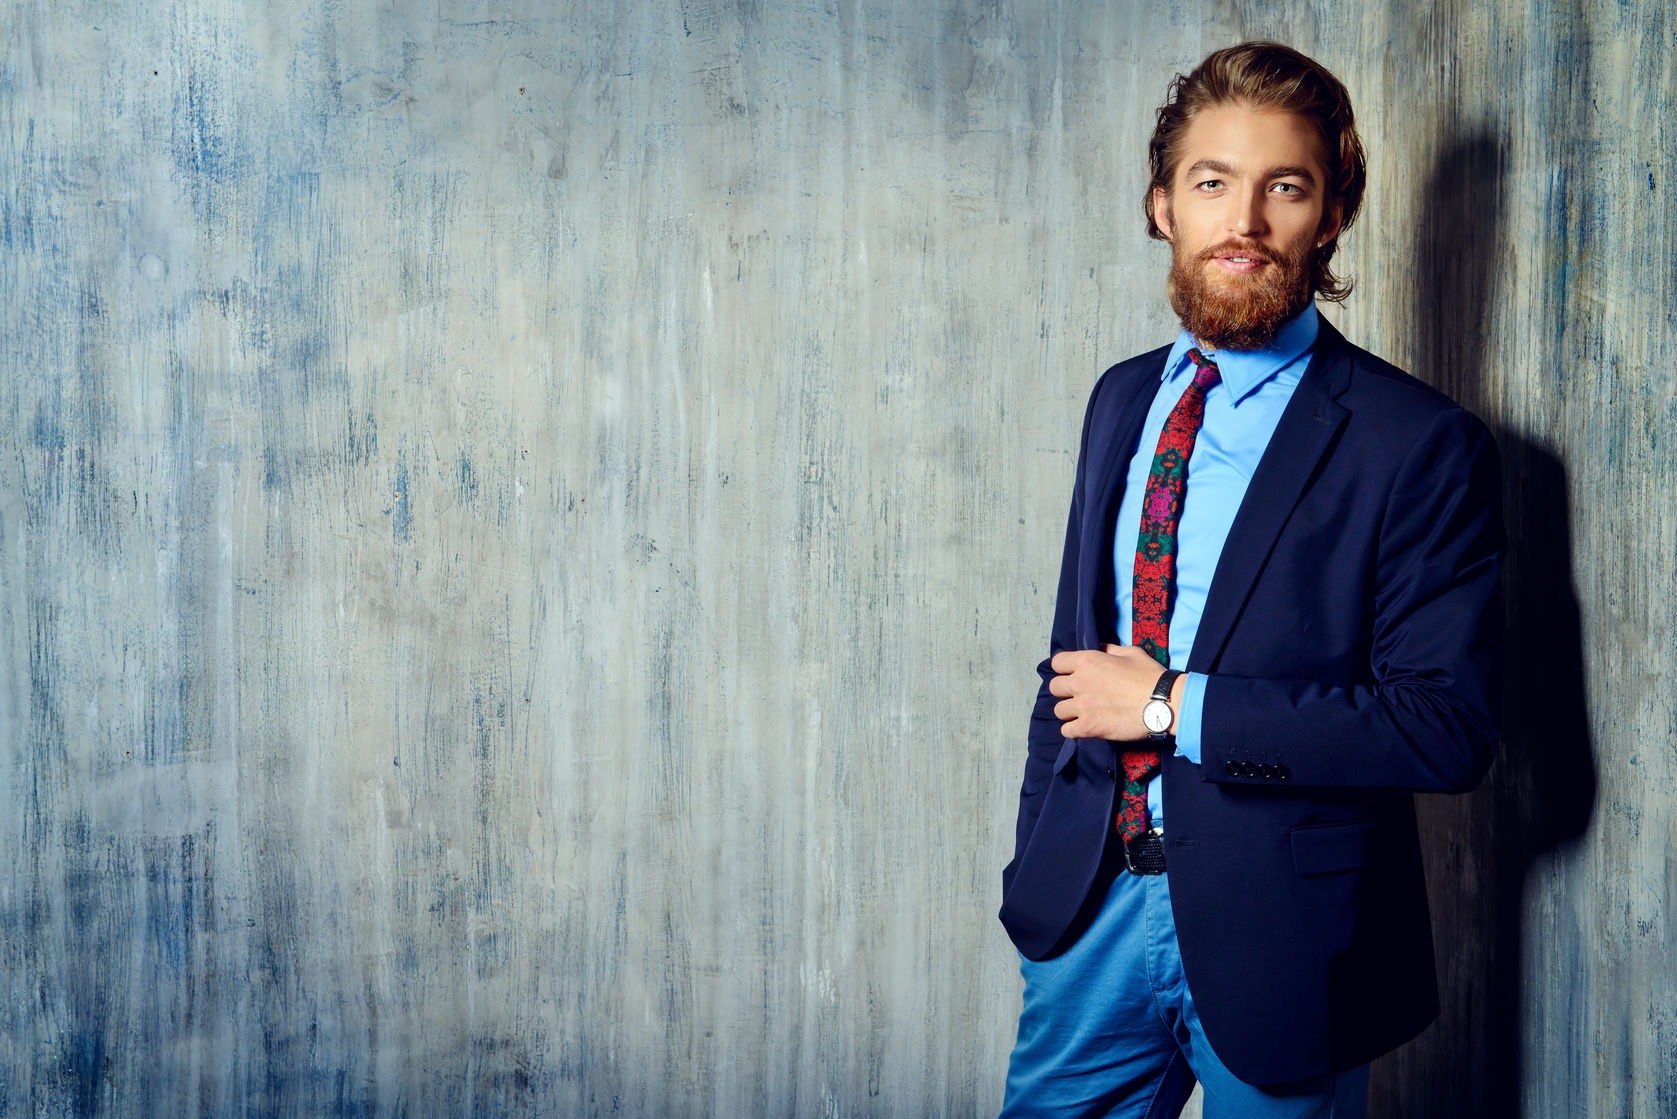 Casual Wedding Attire for Men: 5 Looks to Try this Season